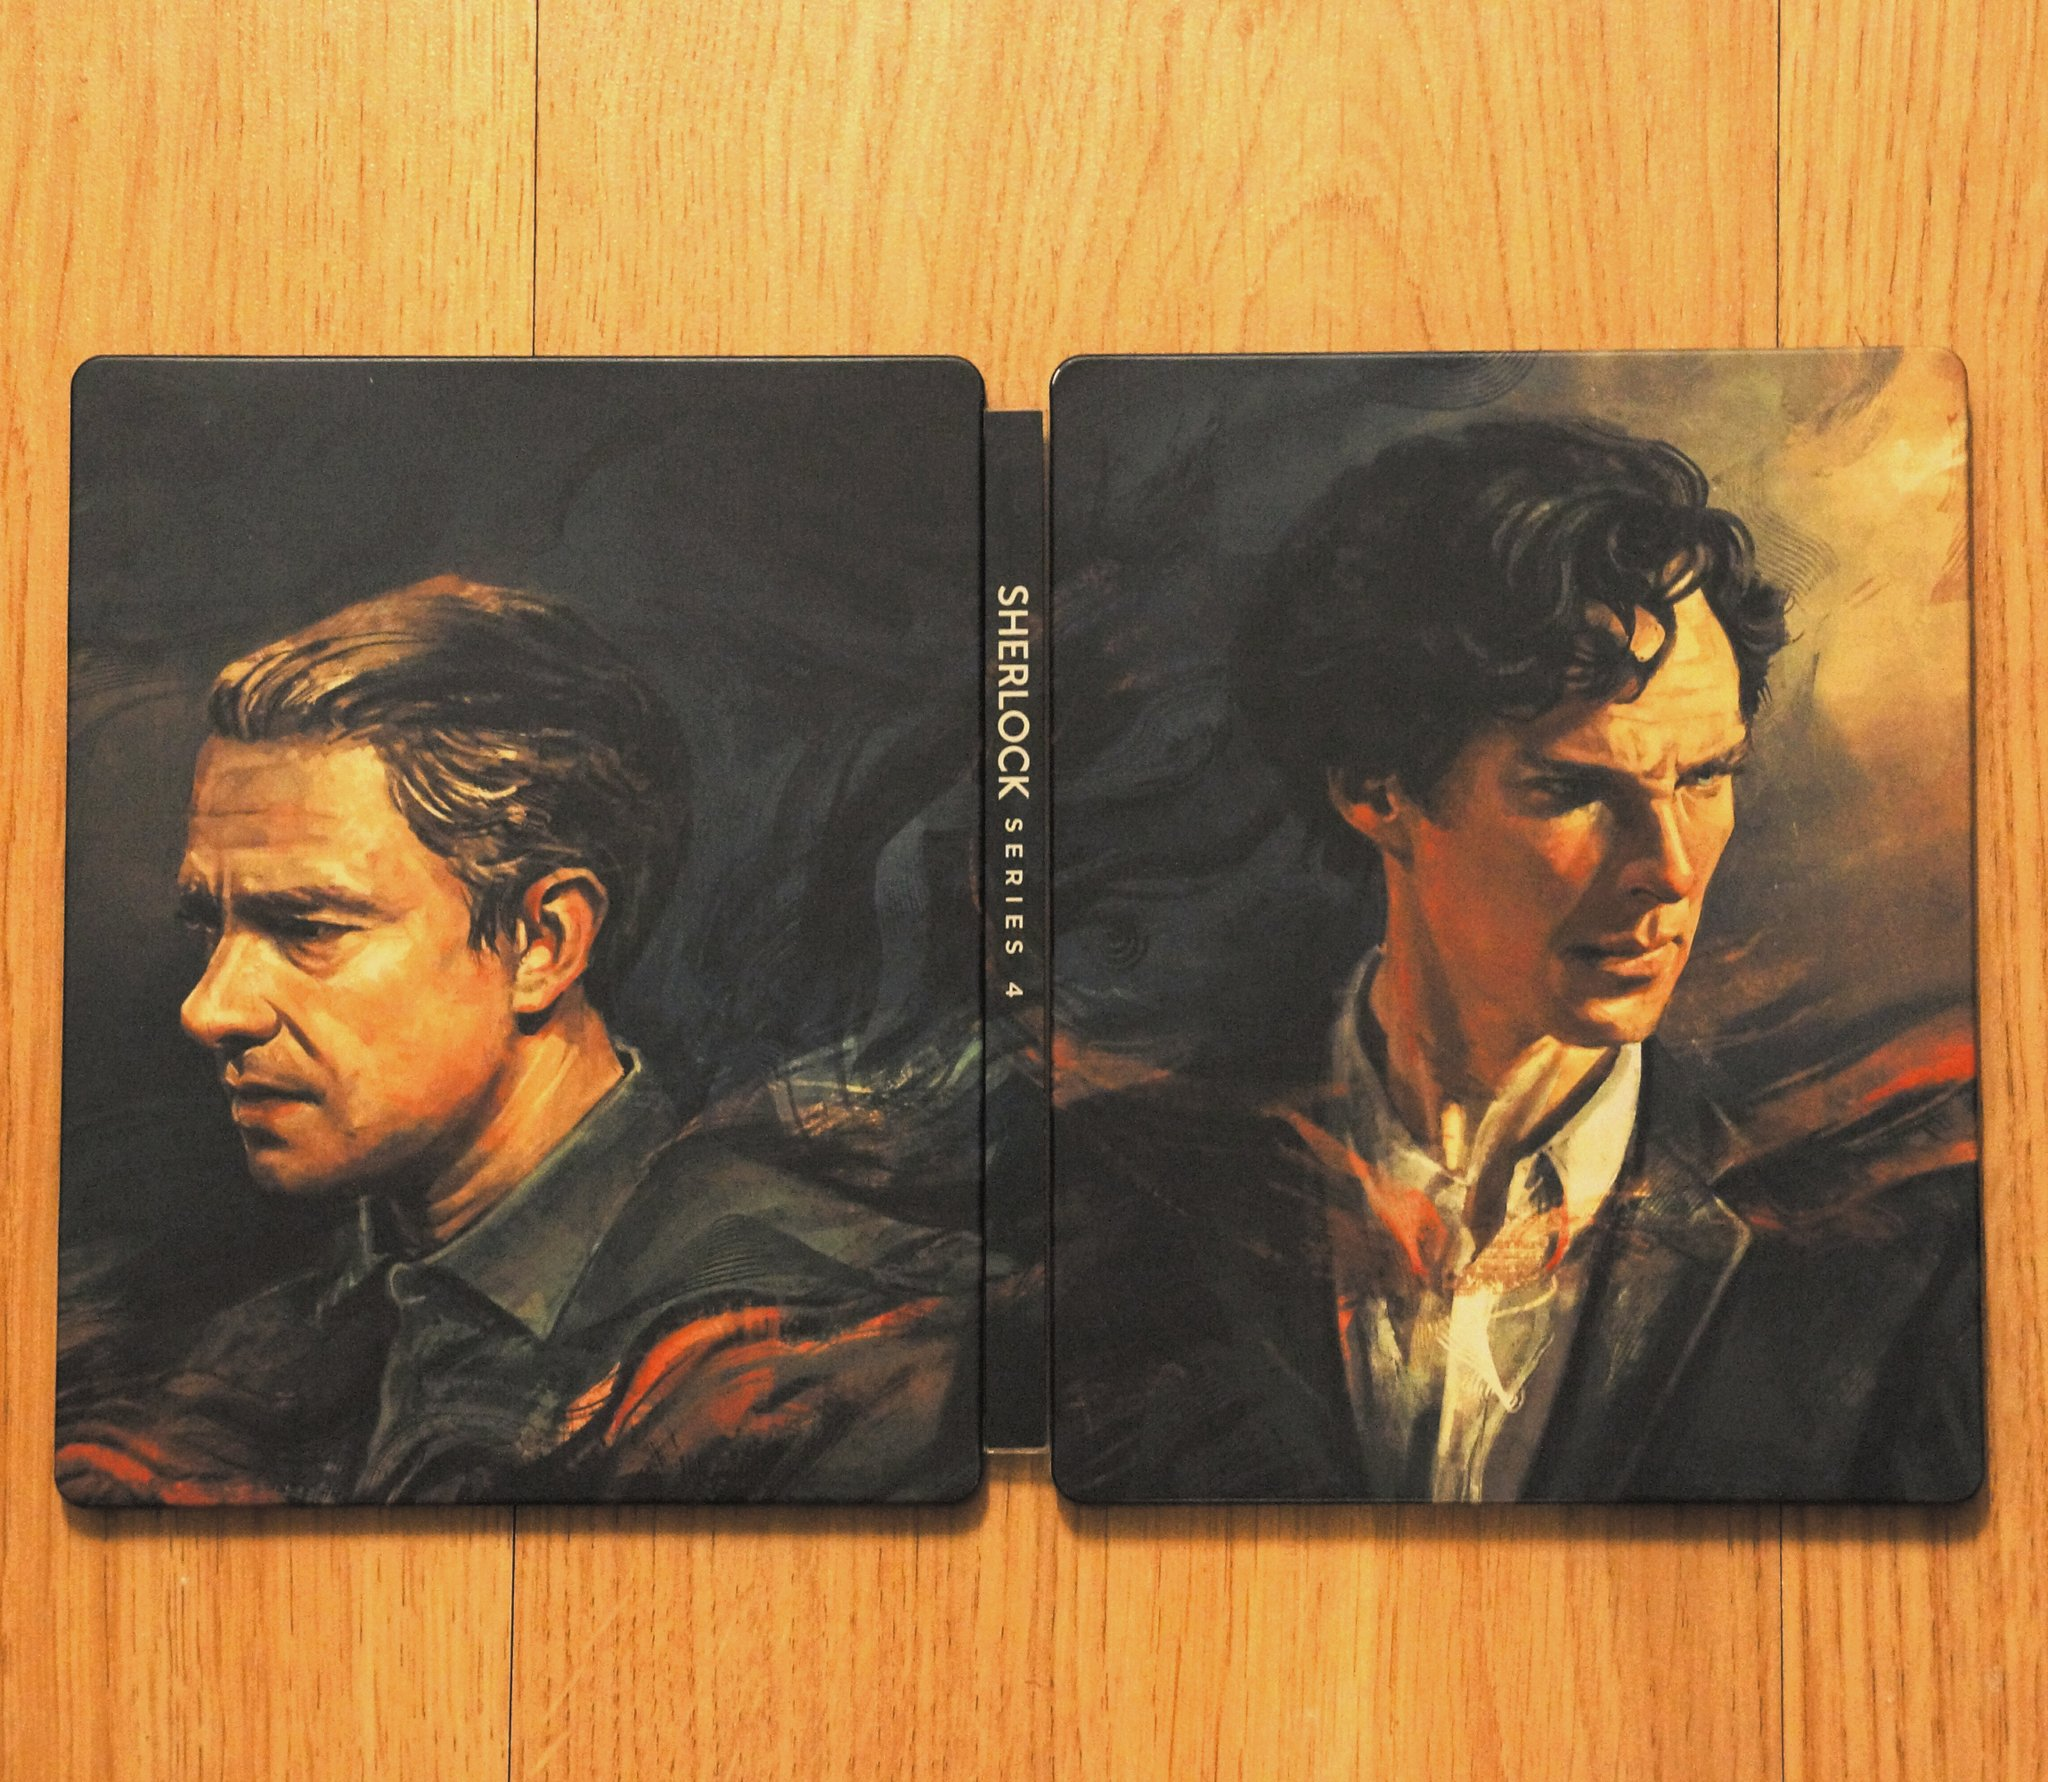 That beautiful #Sherlock S4 Blu Ray Steelbook is in our hands - and best of all, the spines DO align! #OCD https://t.co/dESF6geOwh